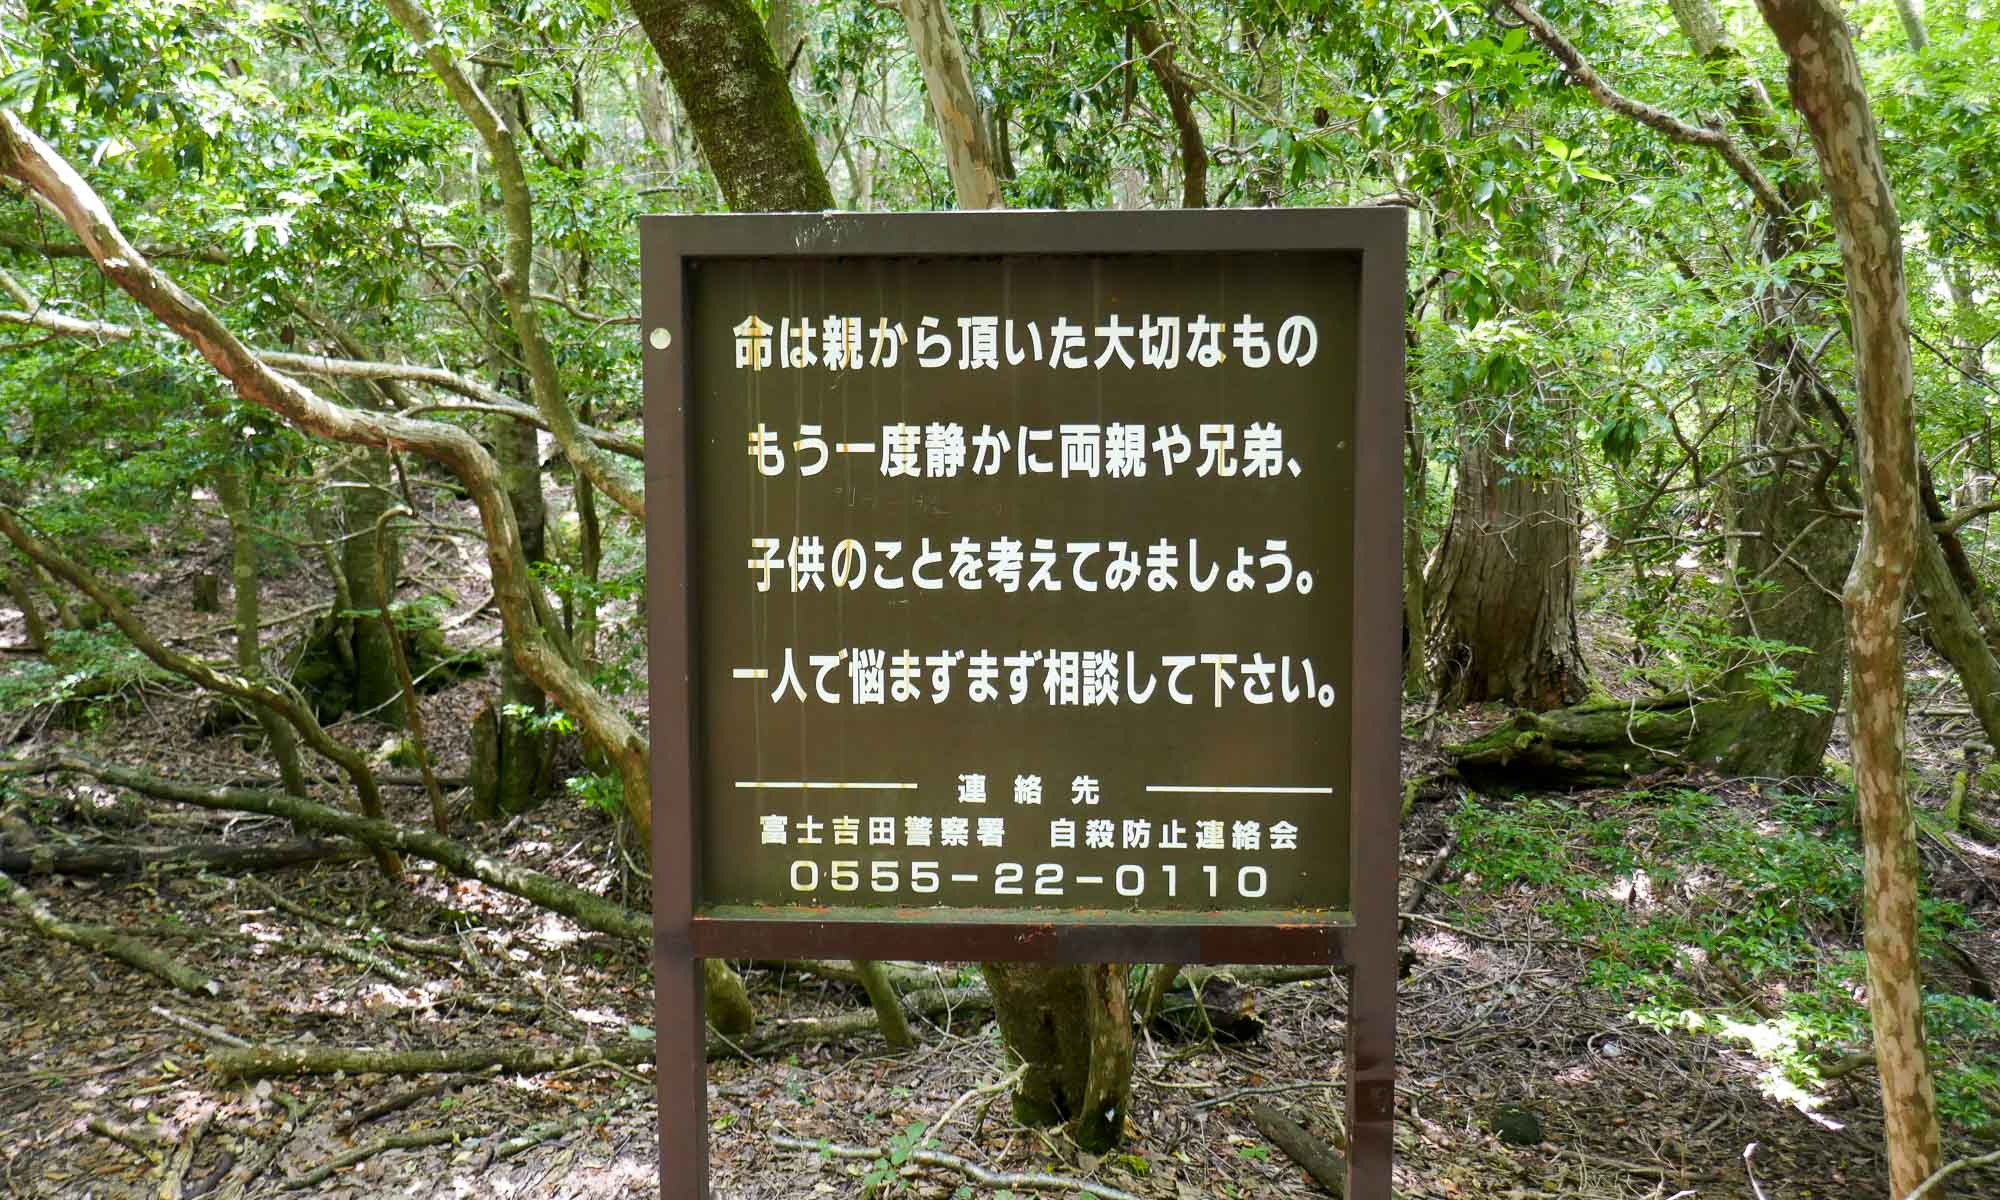 One of the signs at Aokigahara with a phone number for those feeling suicidal